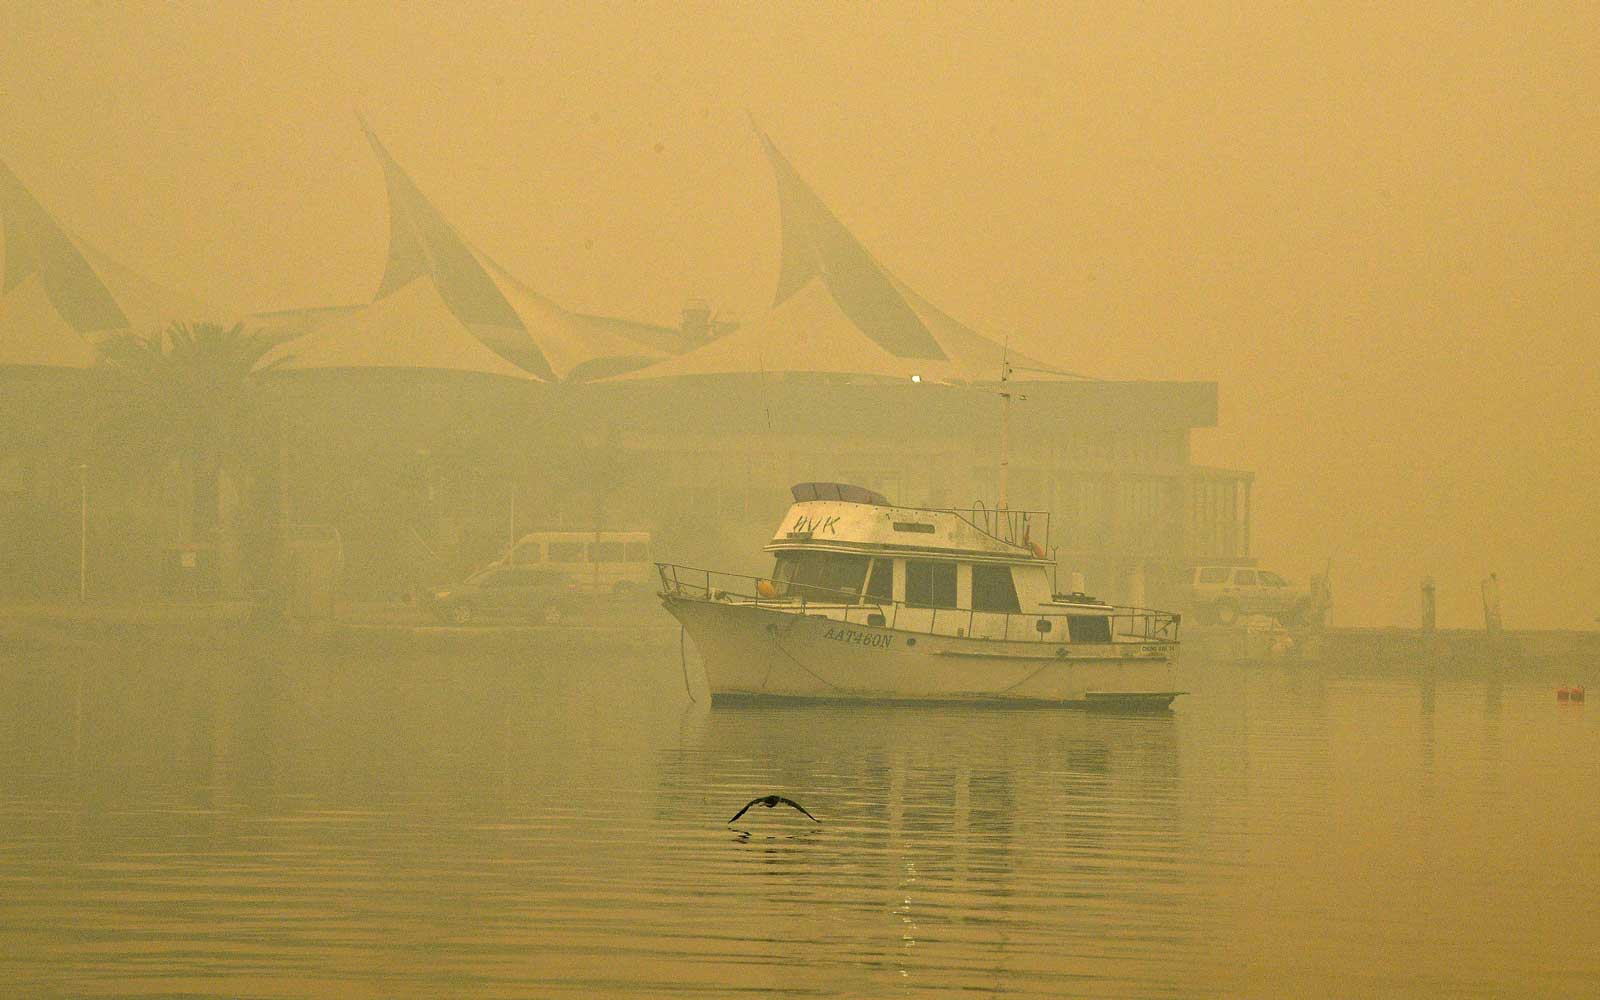 Toxic haze blanketed Sydney on December 10